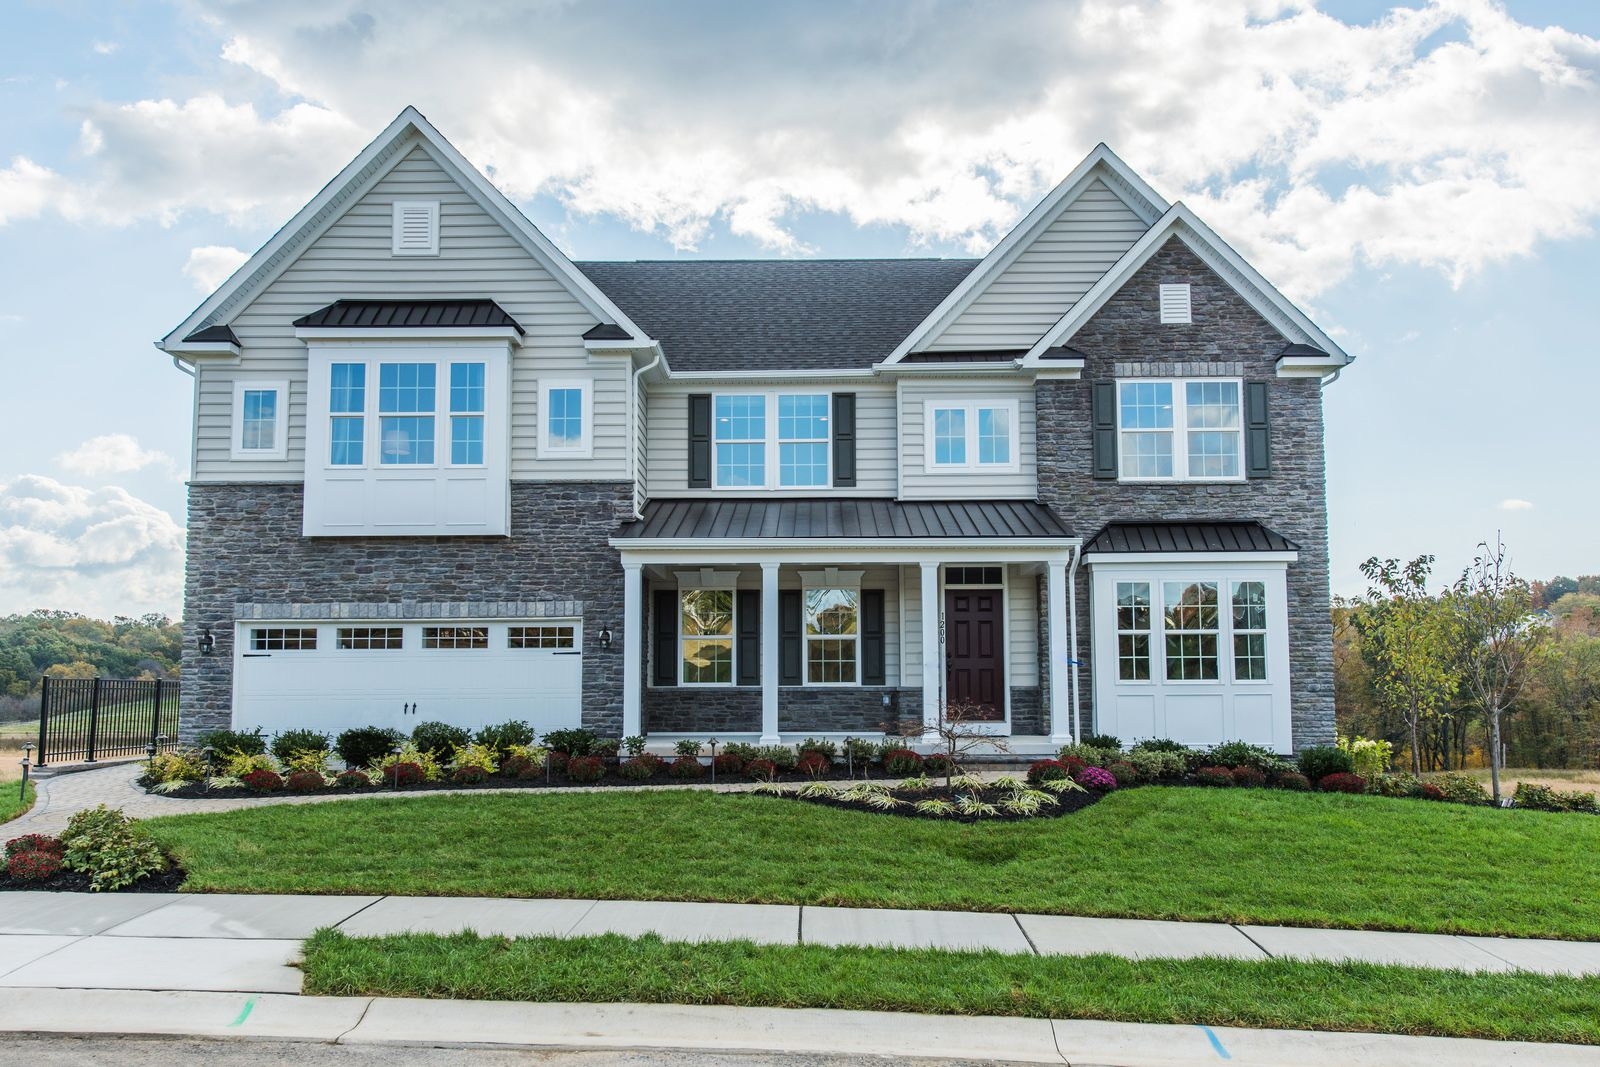 Welcome home to Bradford Walk:The only new estate homes with finished basements included, in Downingtown schools, convenient to West Chester, Malvern and King of Prussia.Click here toschedule an appointment today!